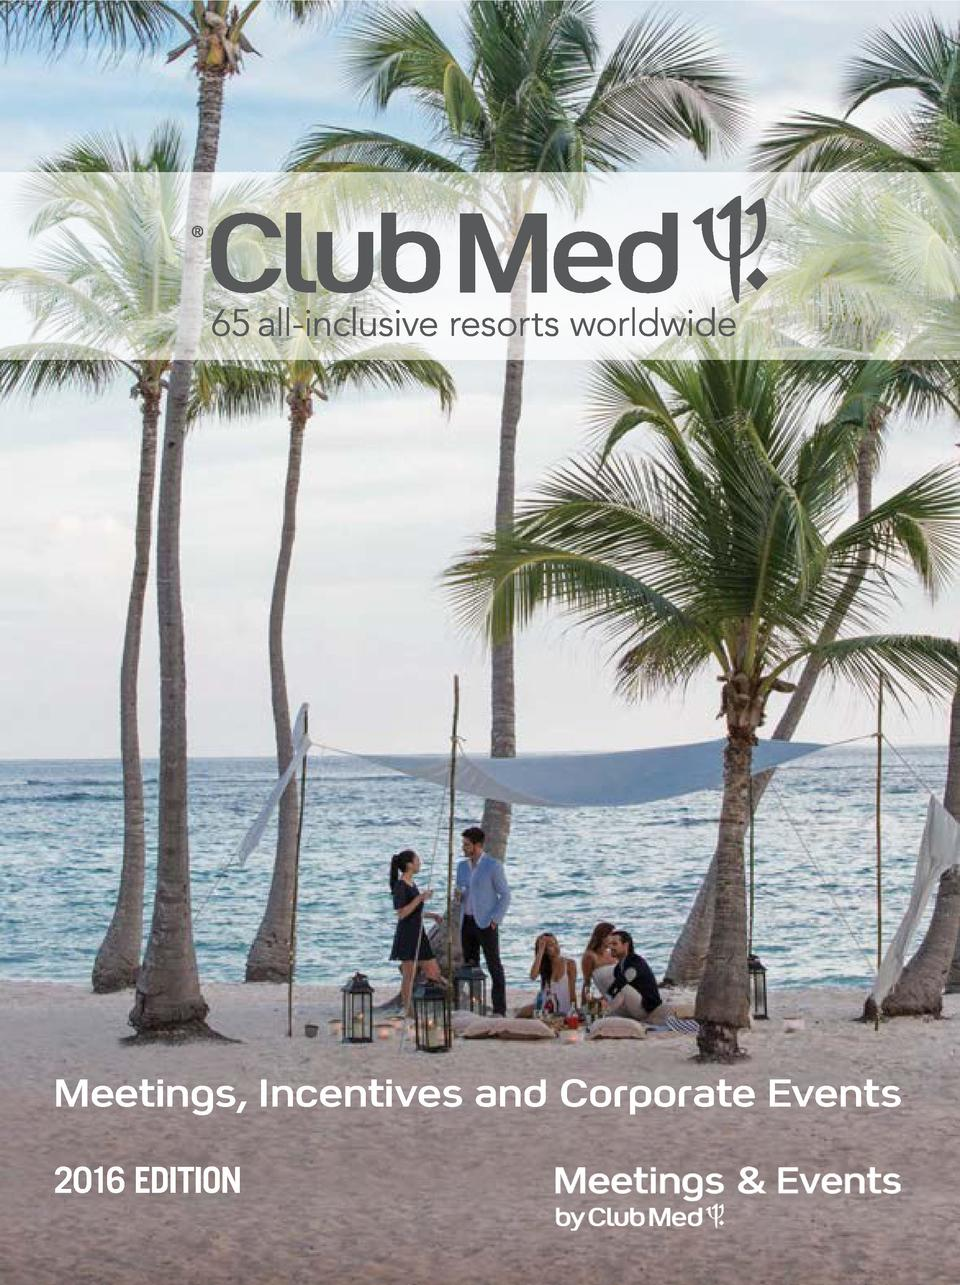 Meetings, Incentives and Corporate Events 2016 EDITION